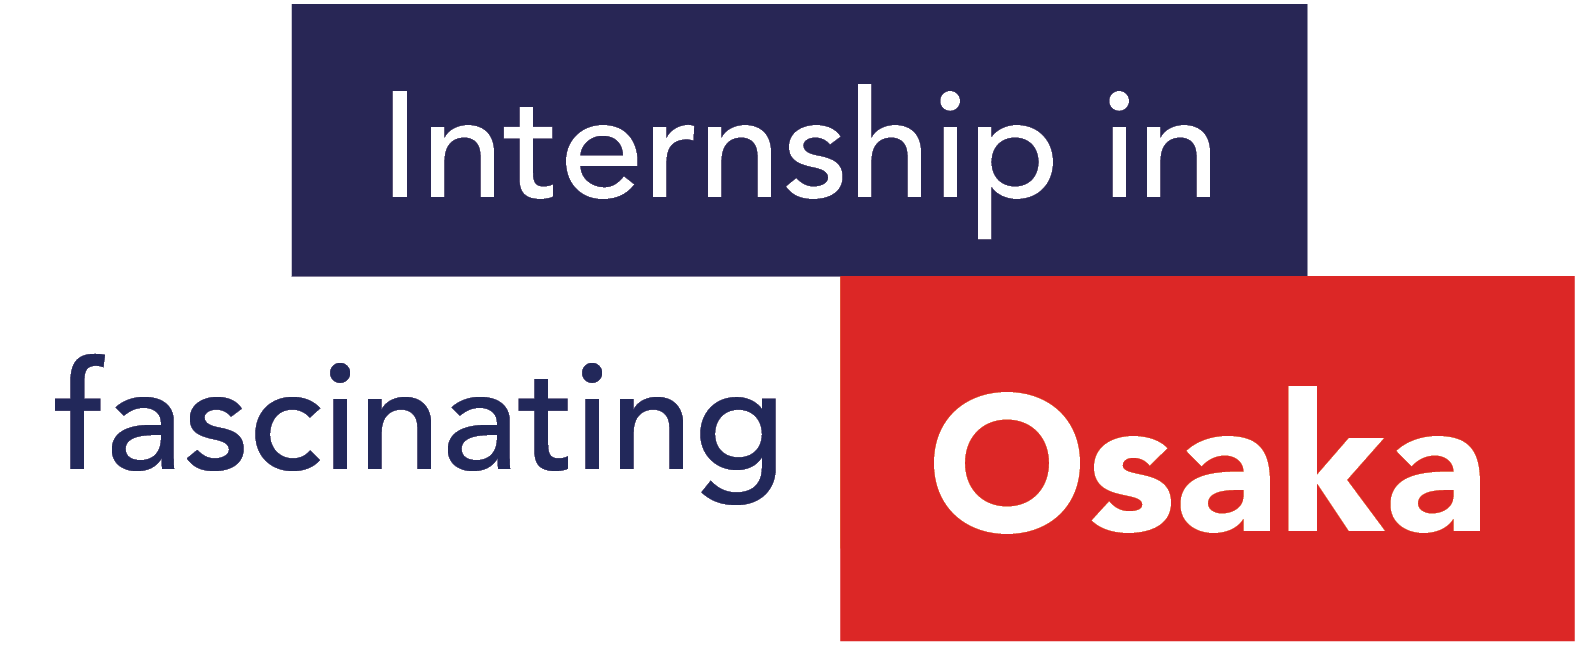 International Internships in Osaka - Japan - CRCC Asia Banner Image